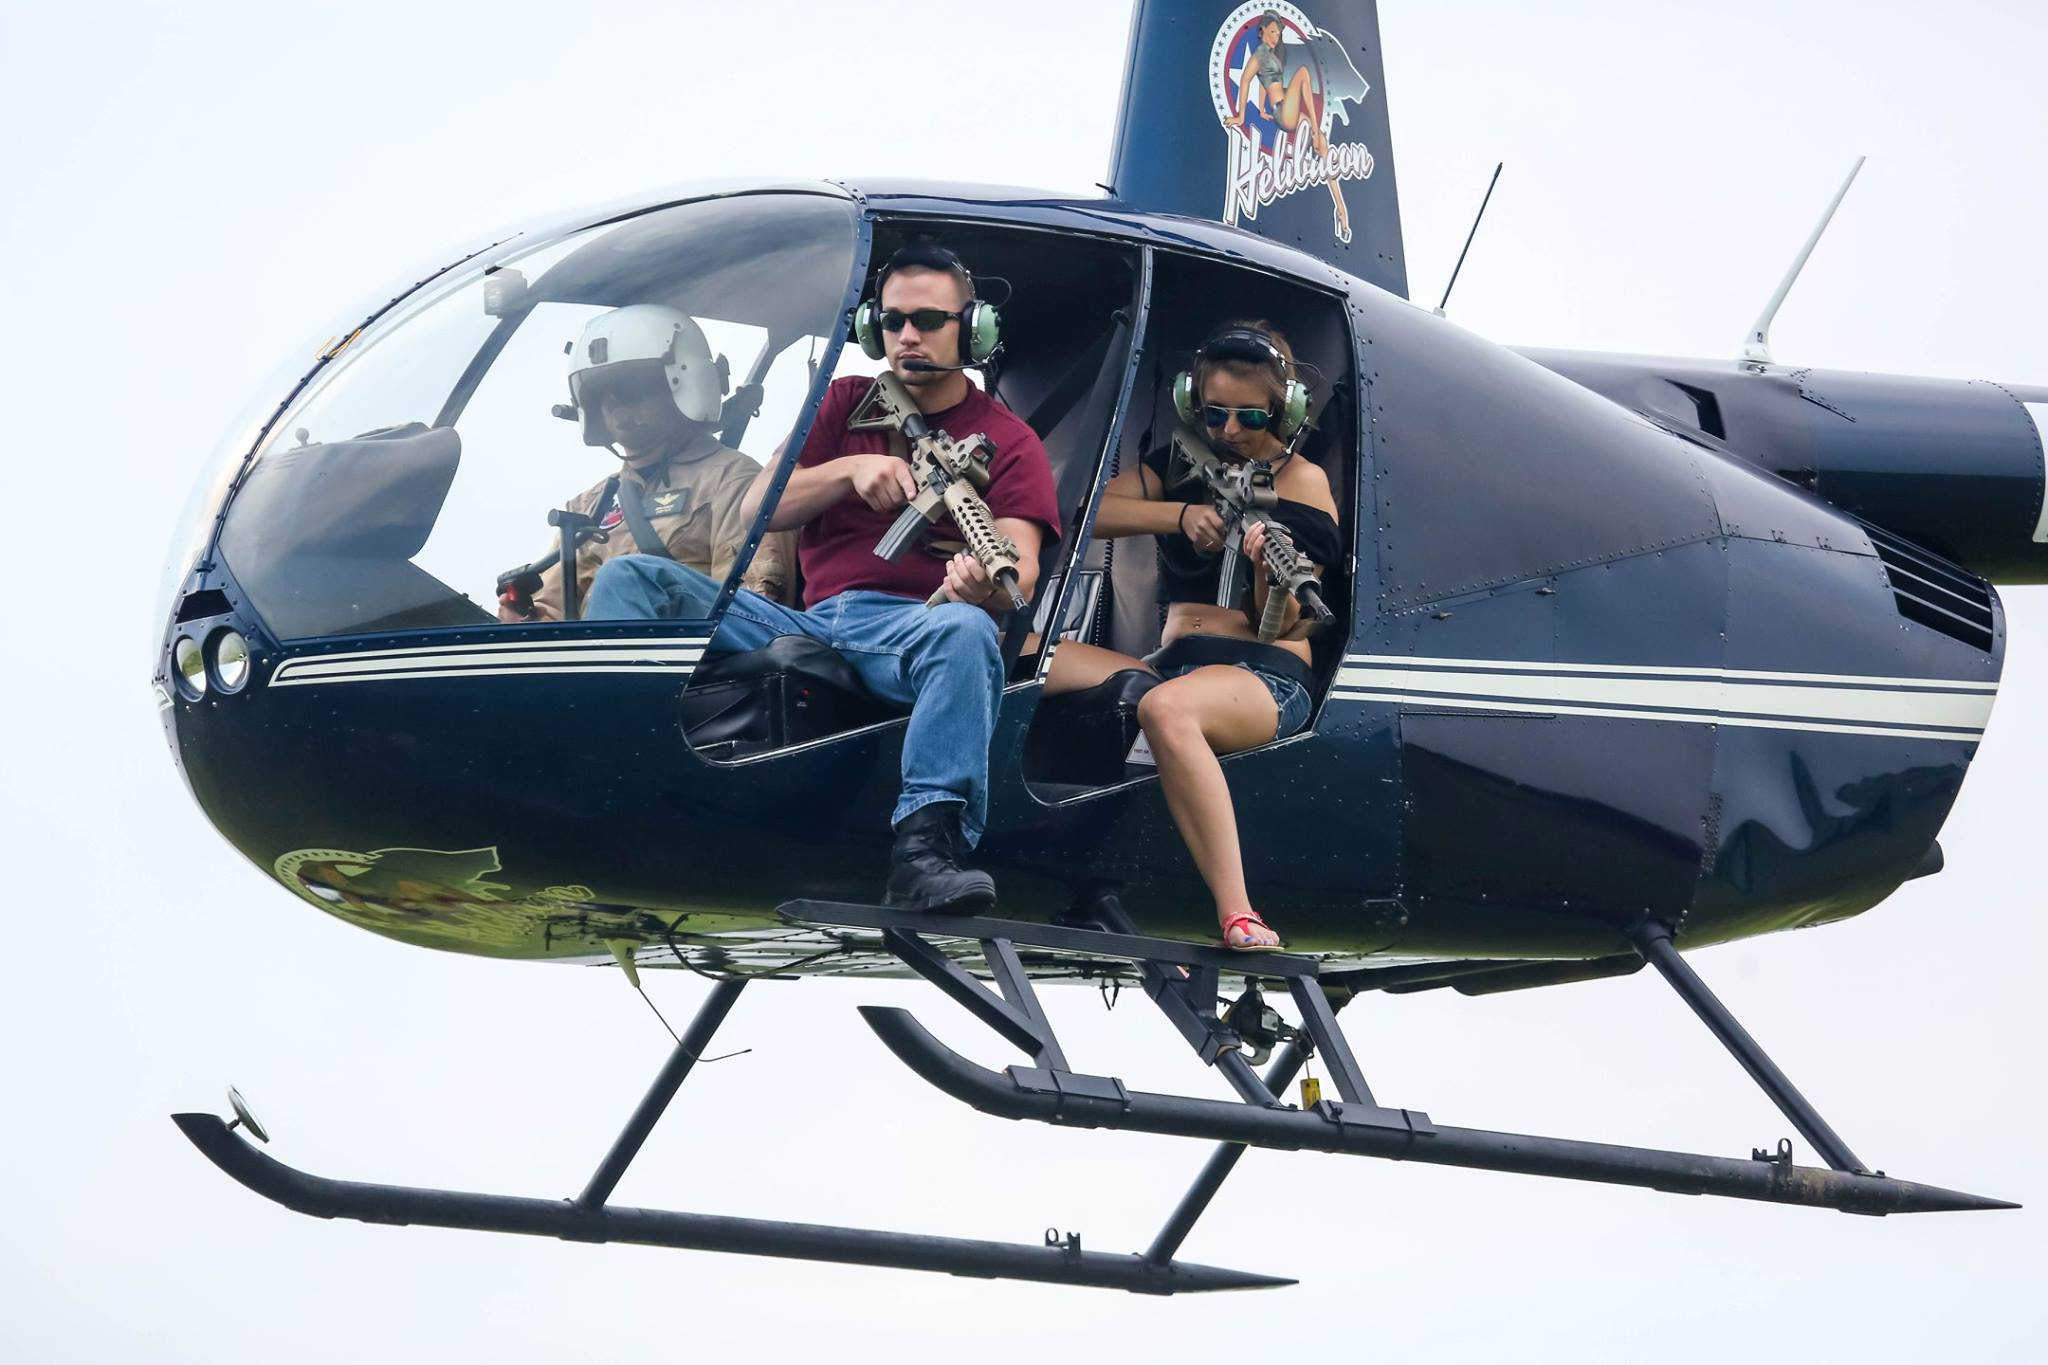 helicopter hog hunt texas with Helicopter Hog Hunting Takes Off To Eliminate A Texas Nuisance on Hog Hunt With 300 Blackout And Glock as well Hunting In Australia together with Contact besides Vertx Ultimate Hog Hunting Safari Giveaway 120492 additionally R Culling Feral Hogs From The Sky In Texas Takes Off 2017 6.